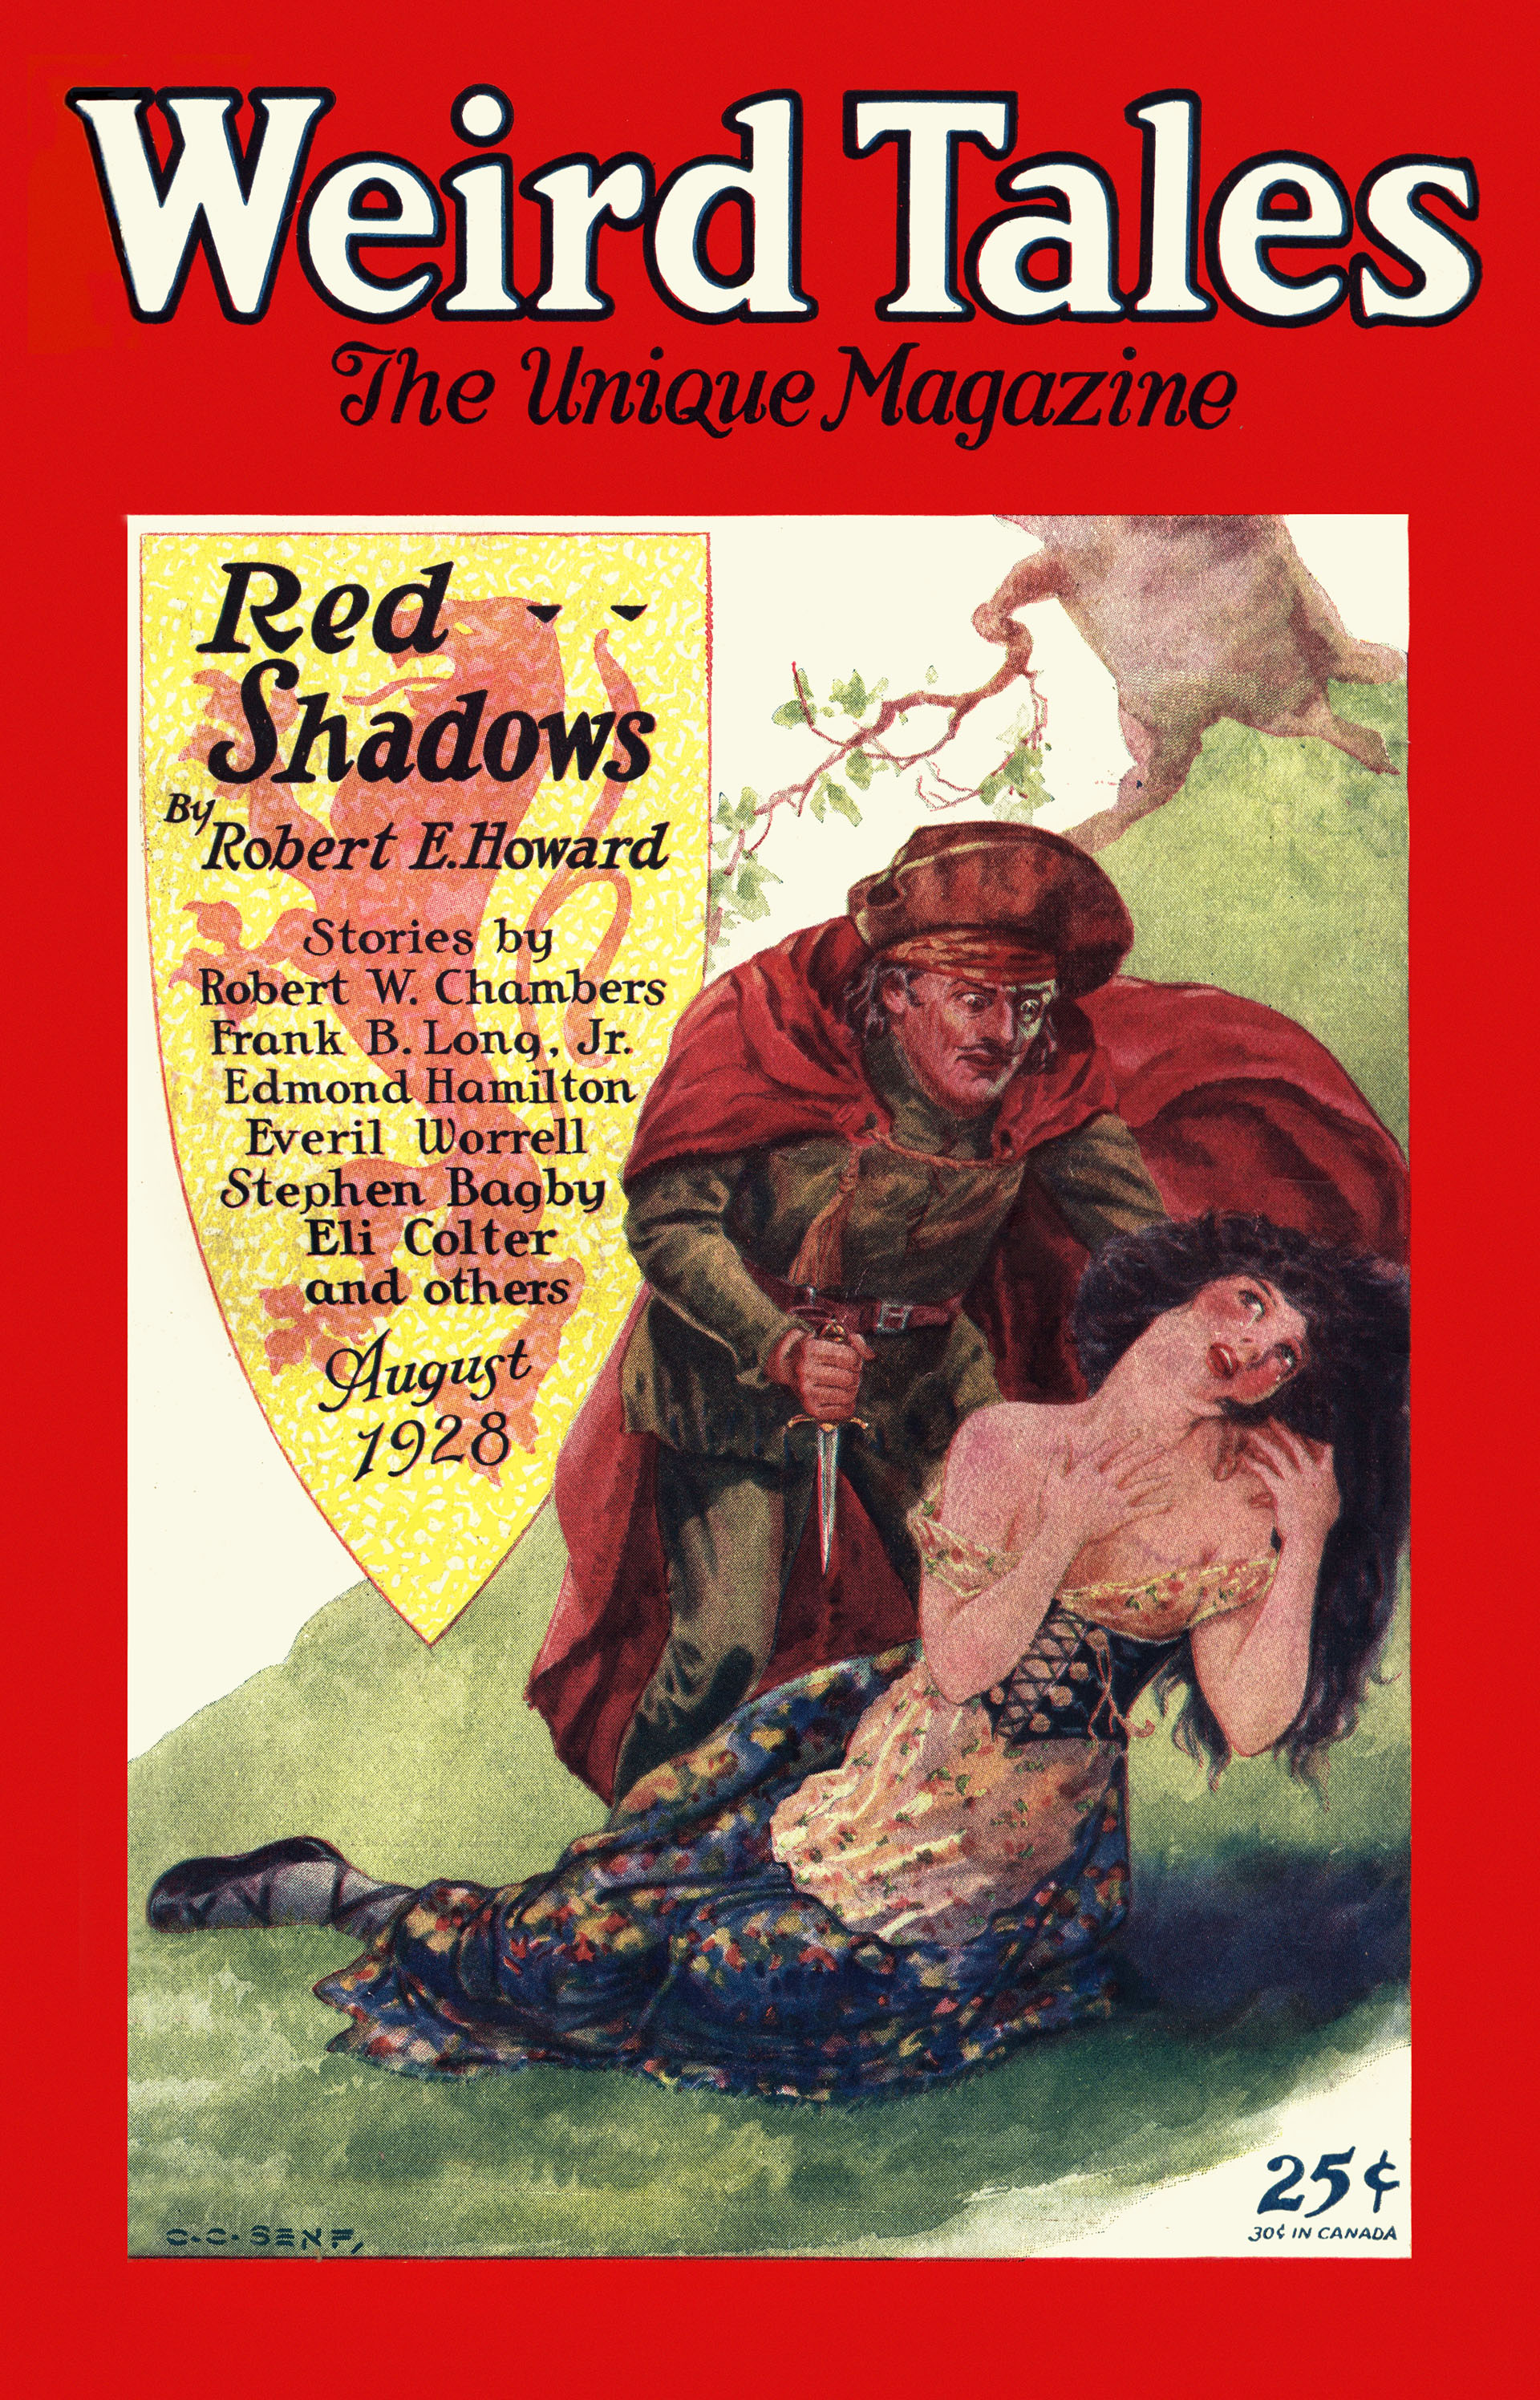 Weird Tales cover image for August 1928: Solomon Kane standing over a ravished woman.